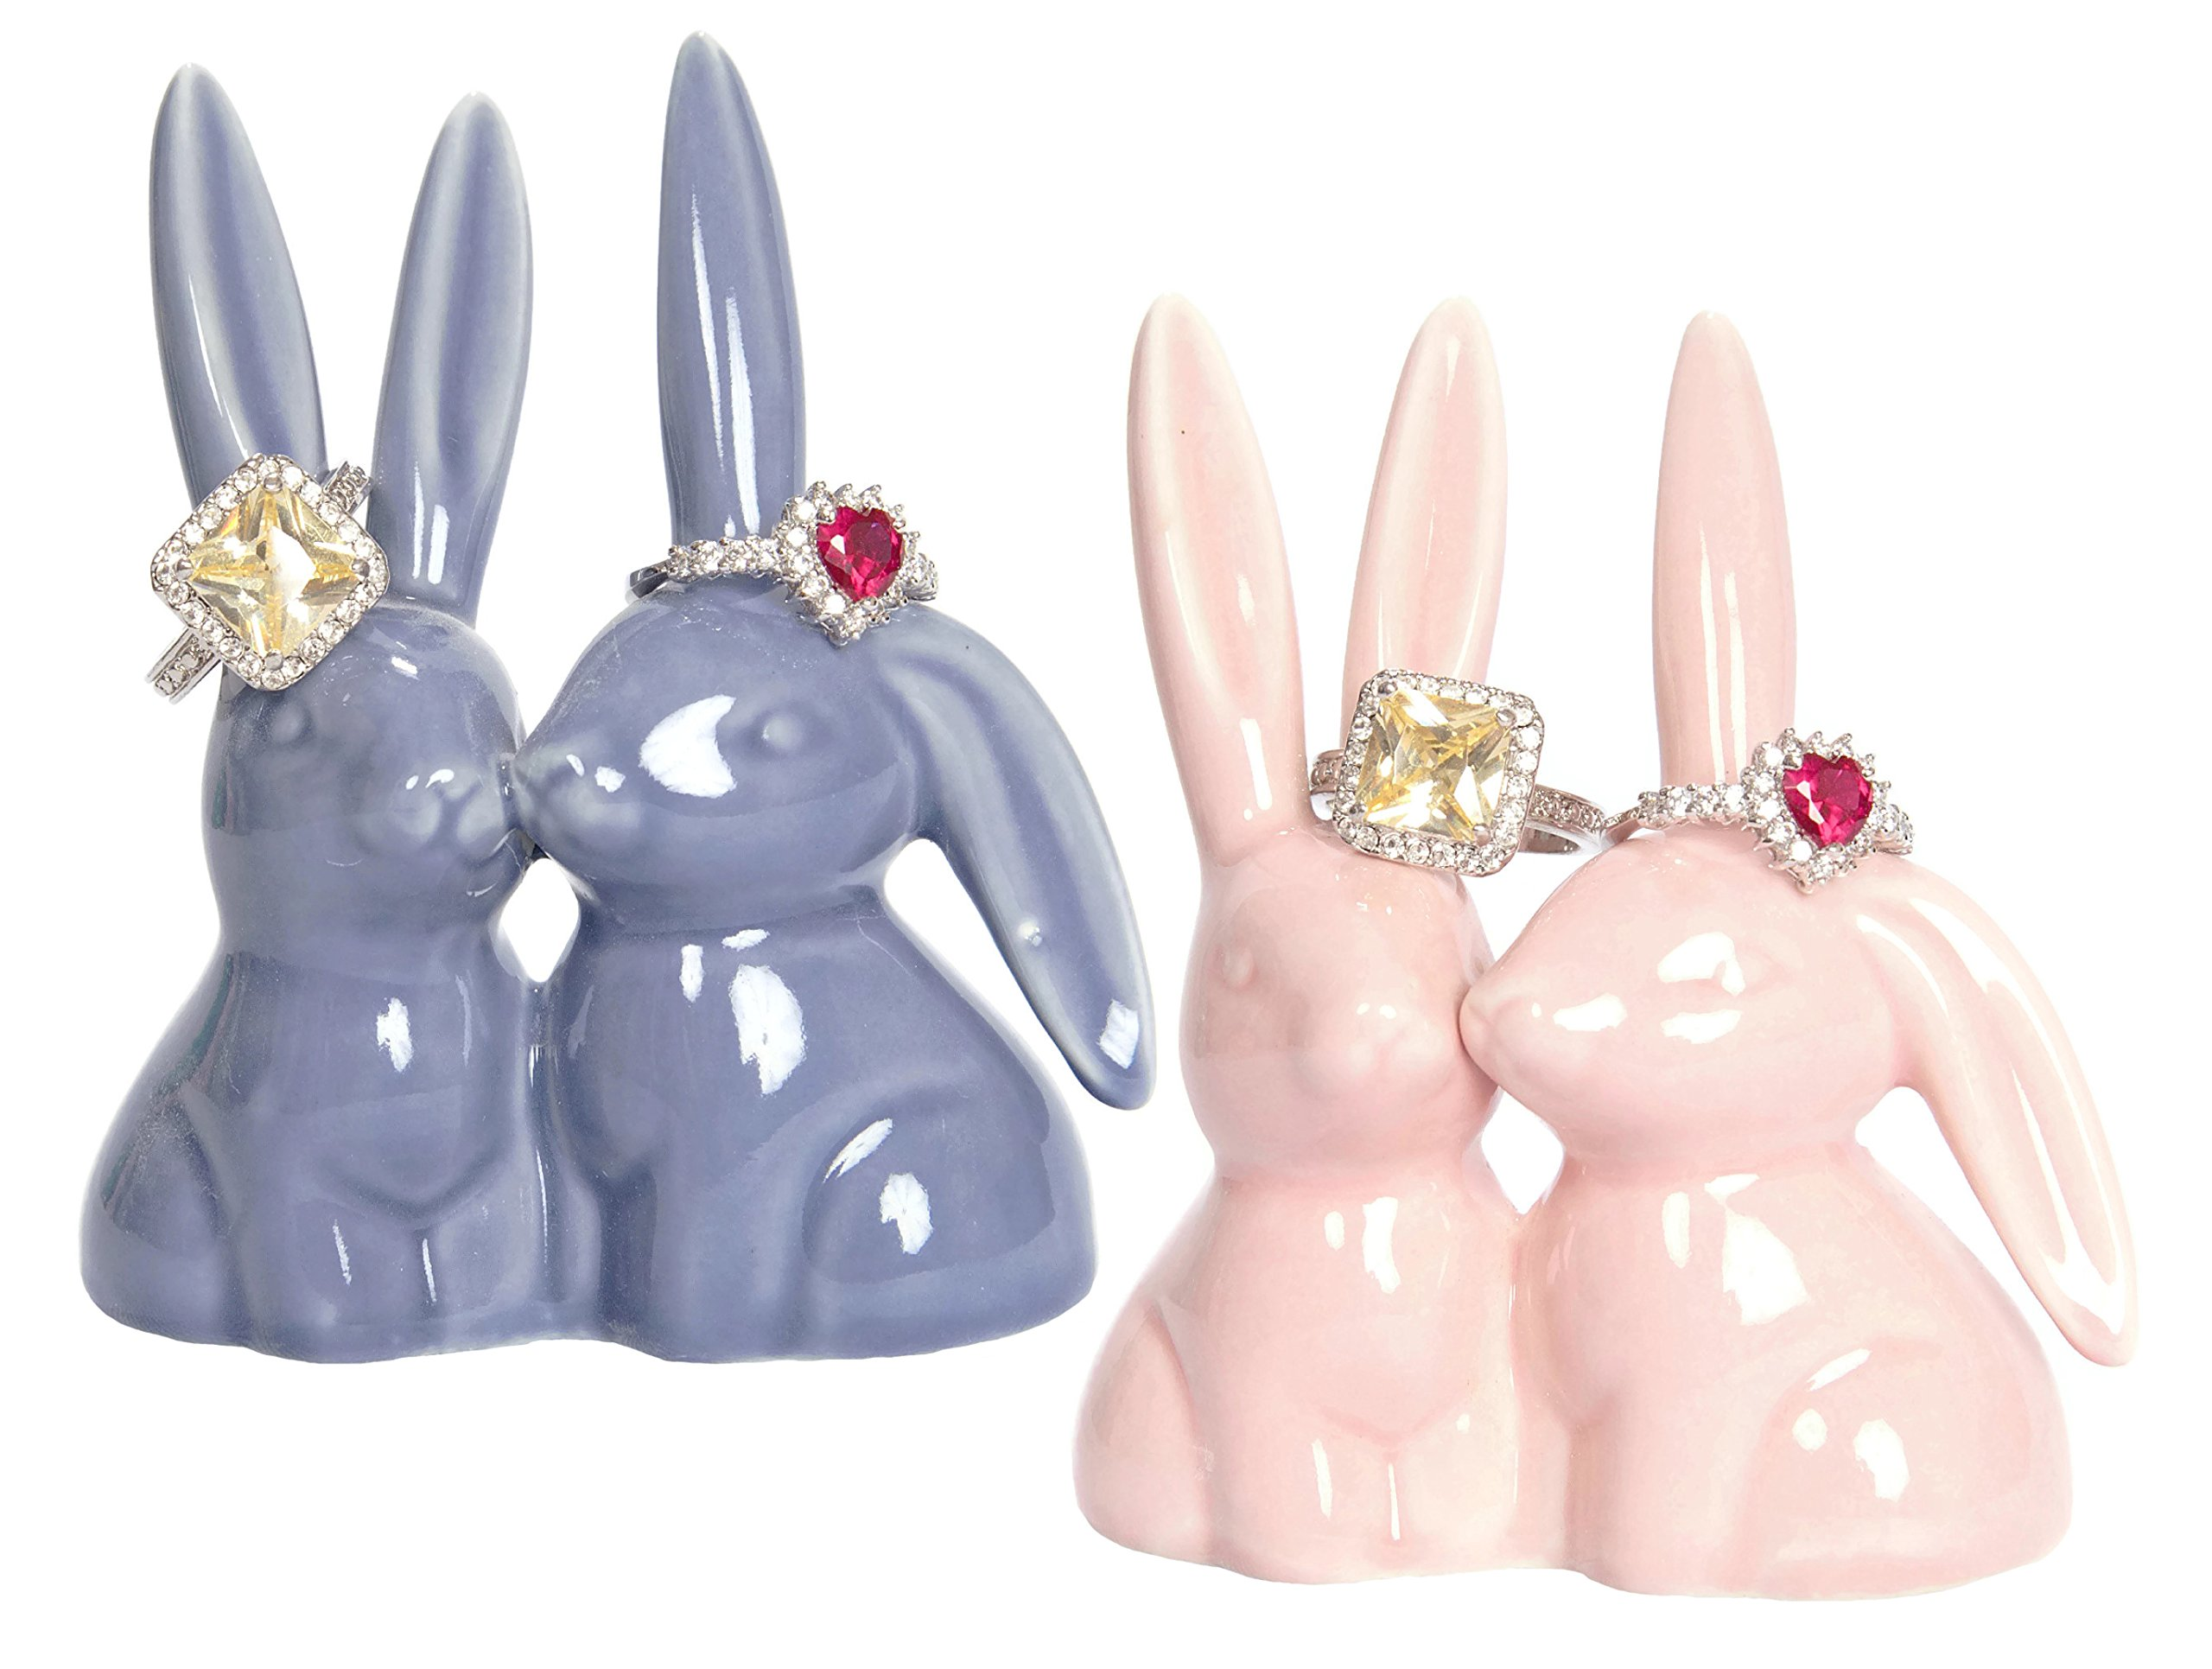 Beth Marie Luxury Boutique Bunny Rabbit Ring Holder (2-Pack), Adorable Pink and Purple Ceramic Engagement and Wedding Ring Holder